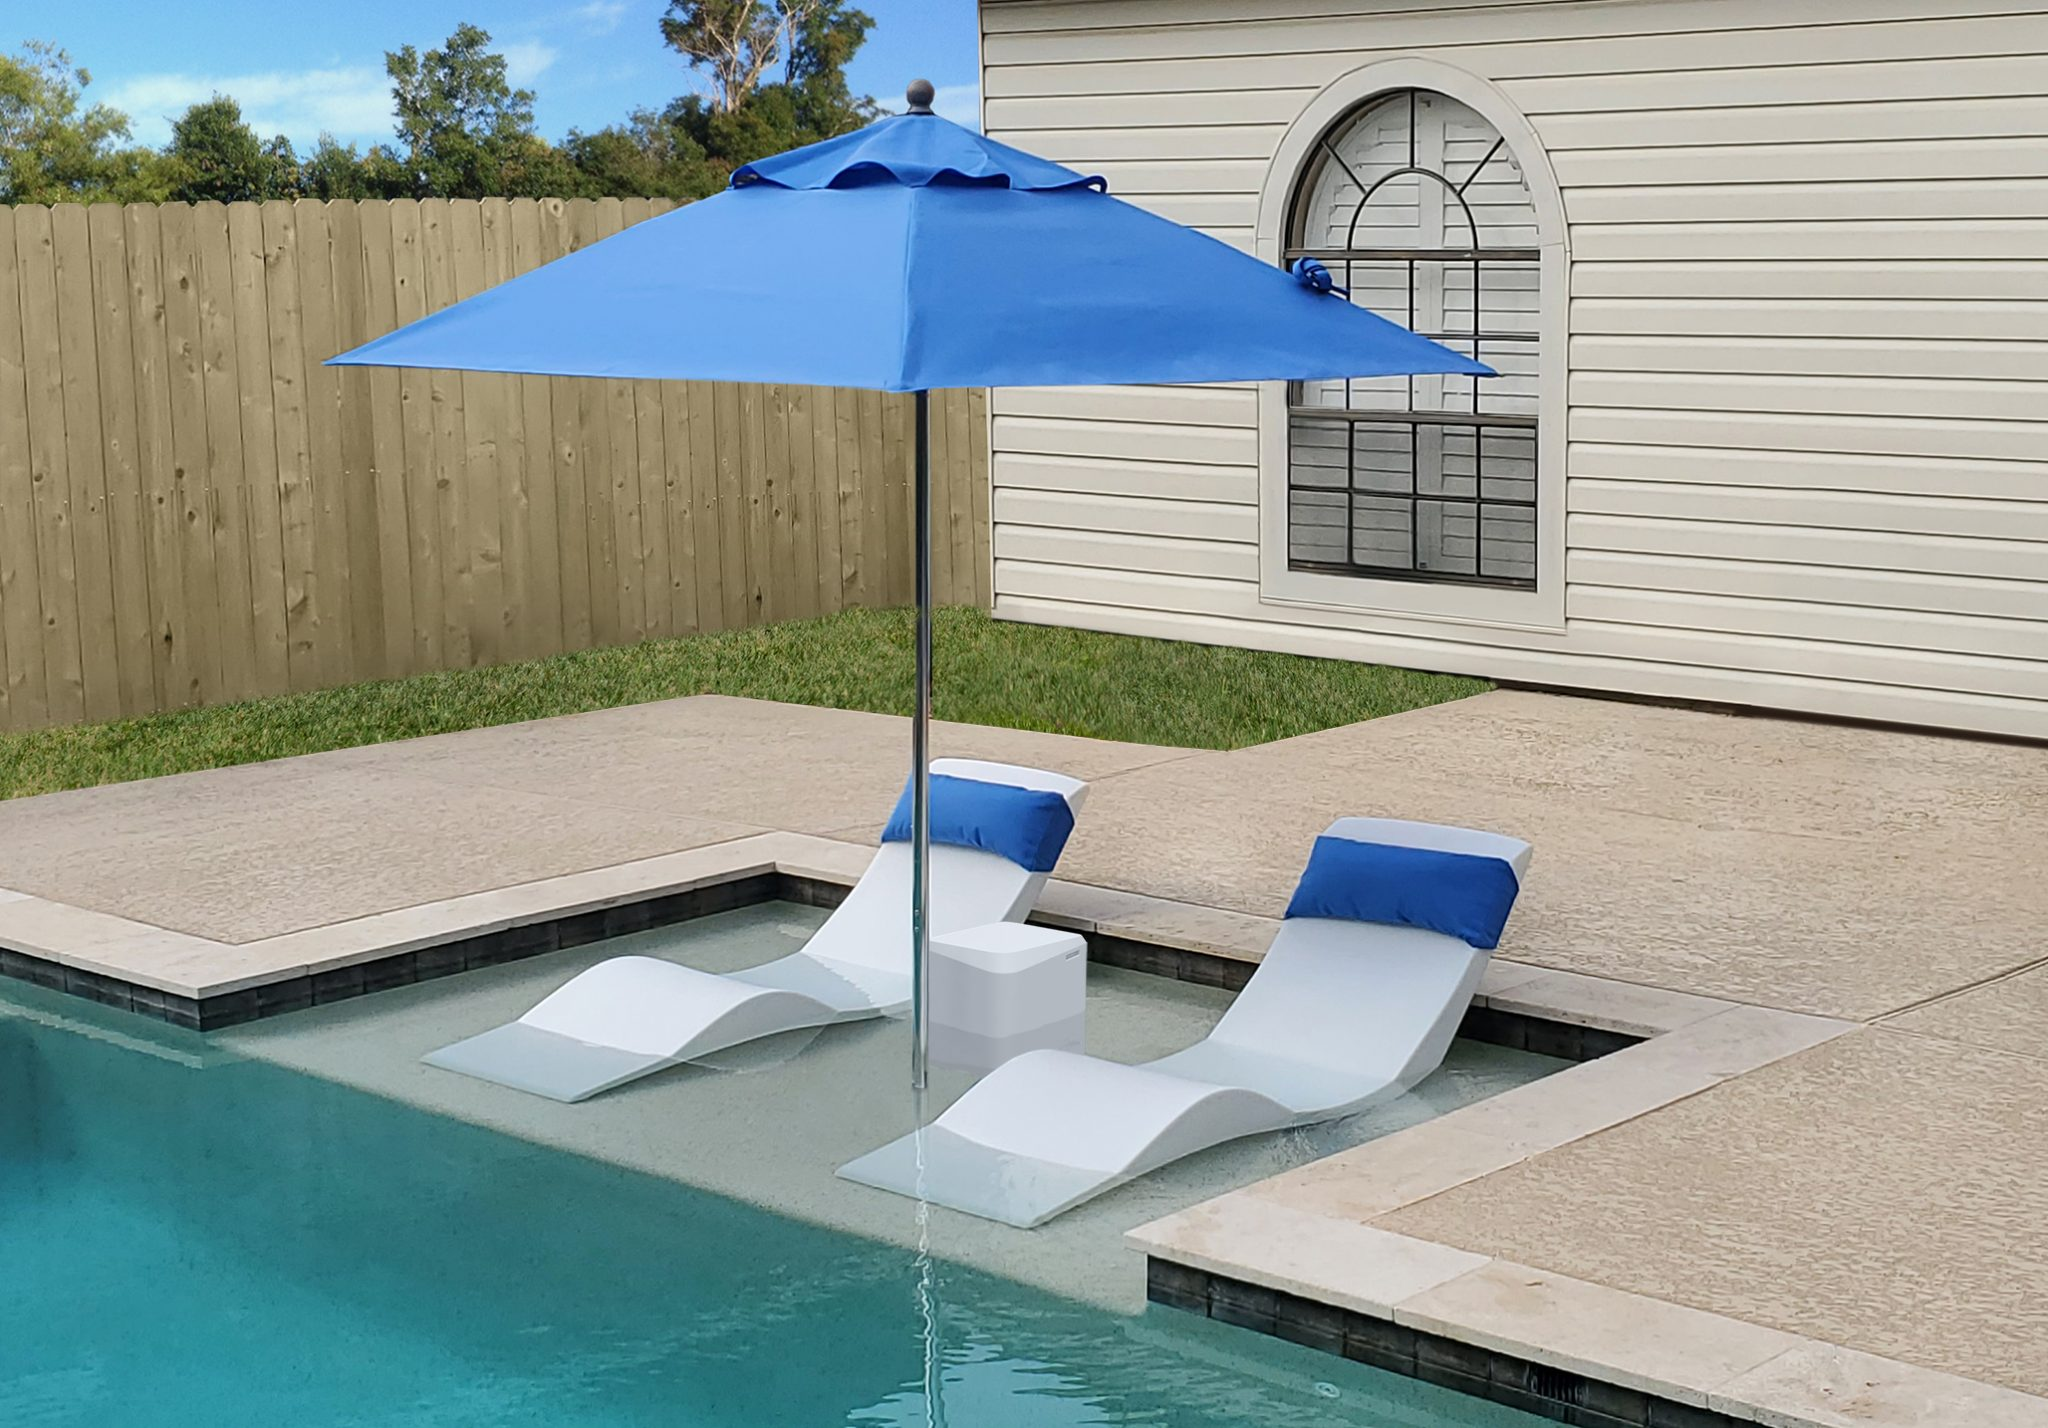 Outdoor Natural Gas Fire Pit Table, Side Table Aqua Chairs In Pool Chaise Lounge Chairs